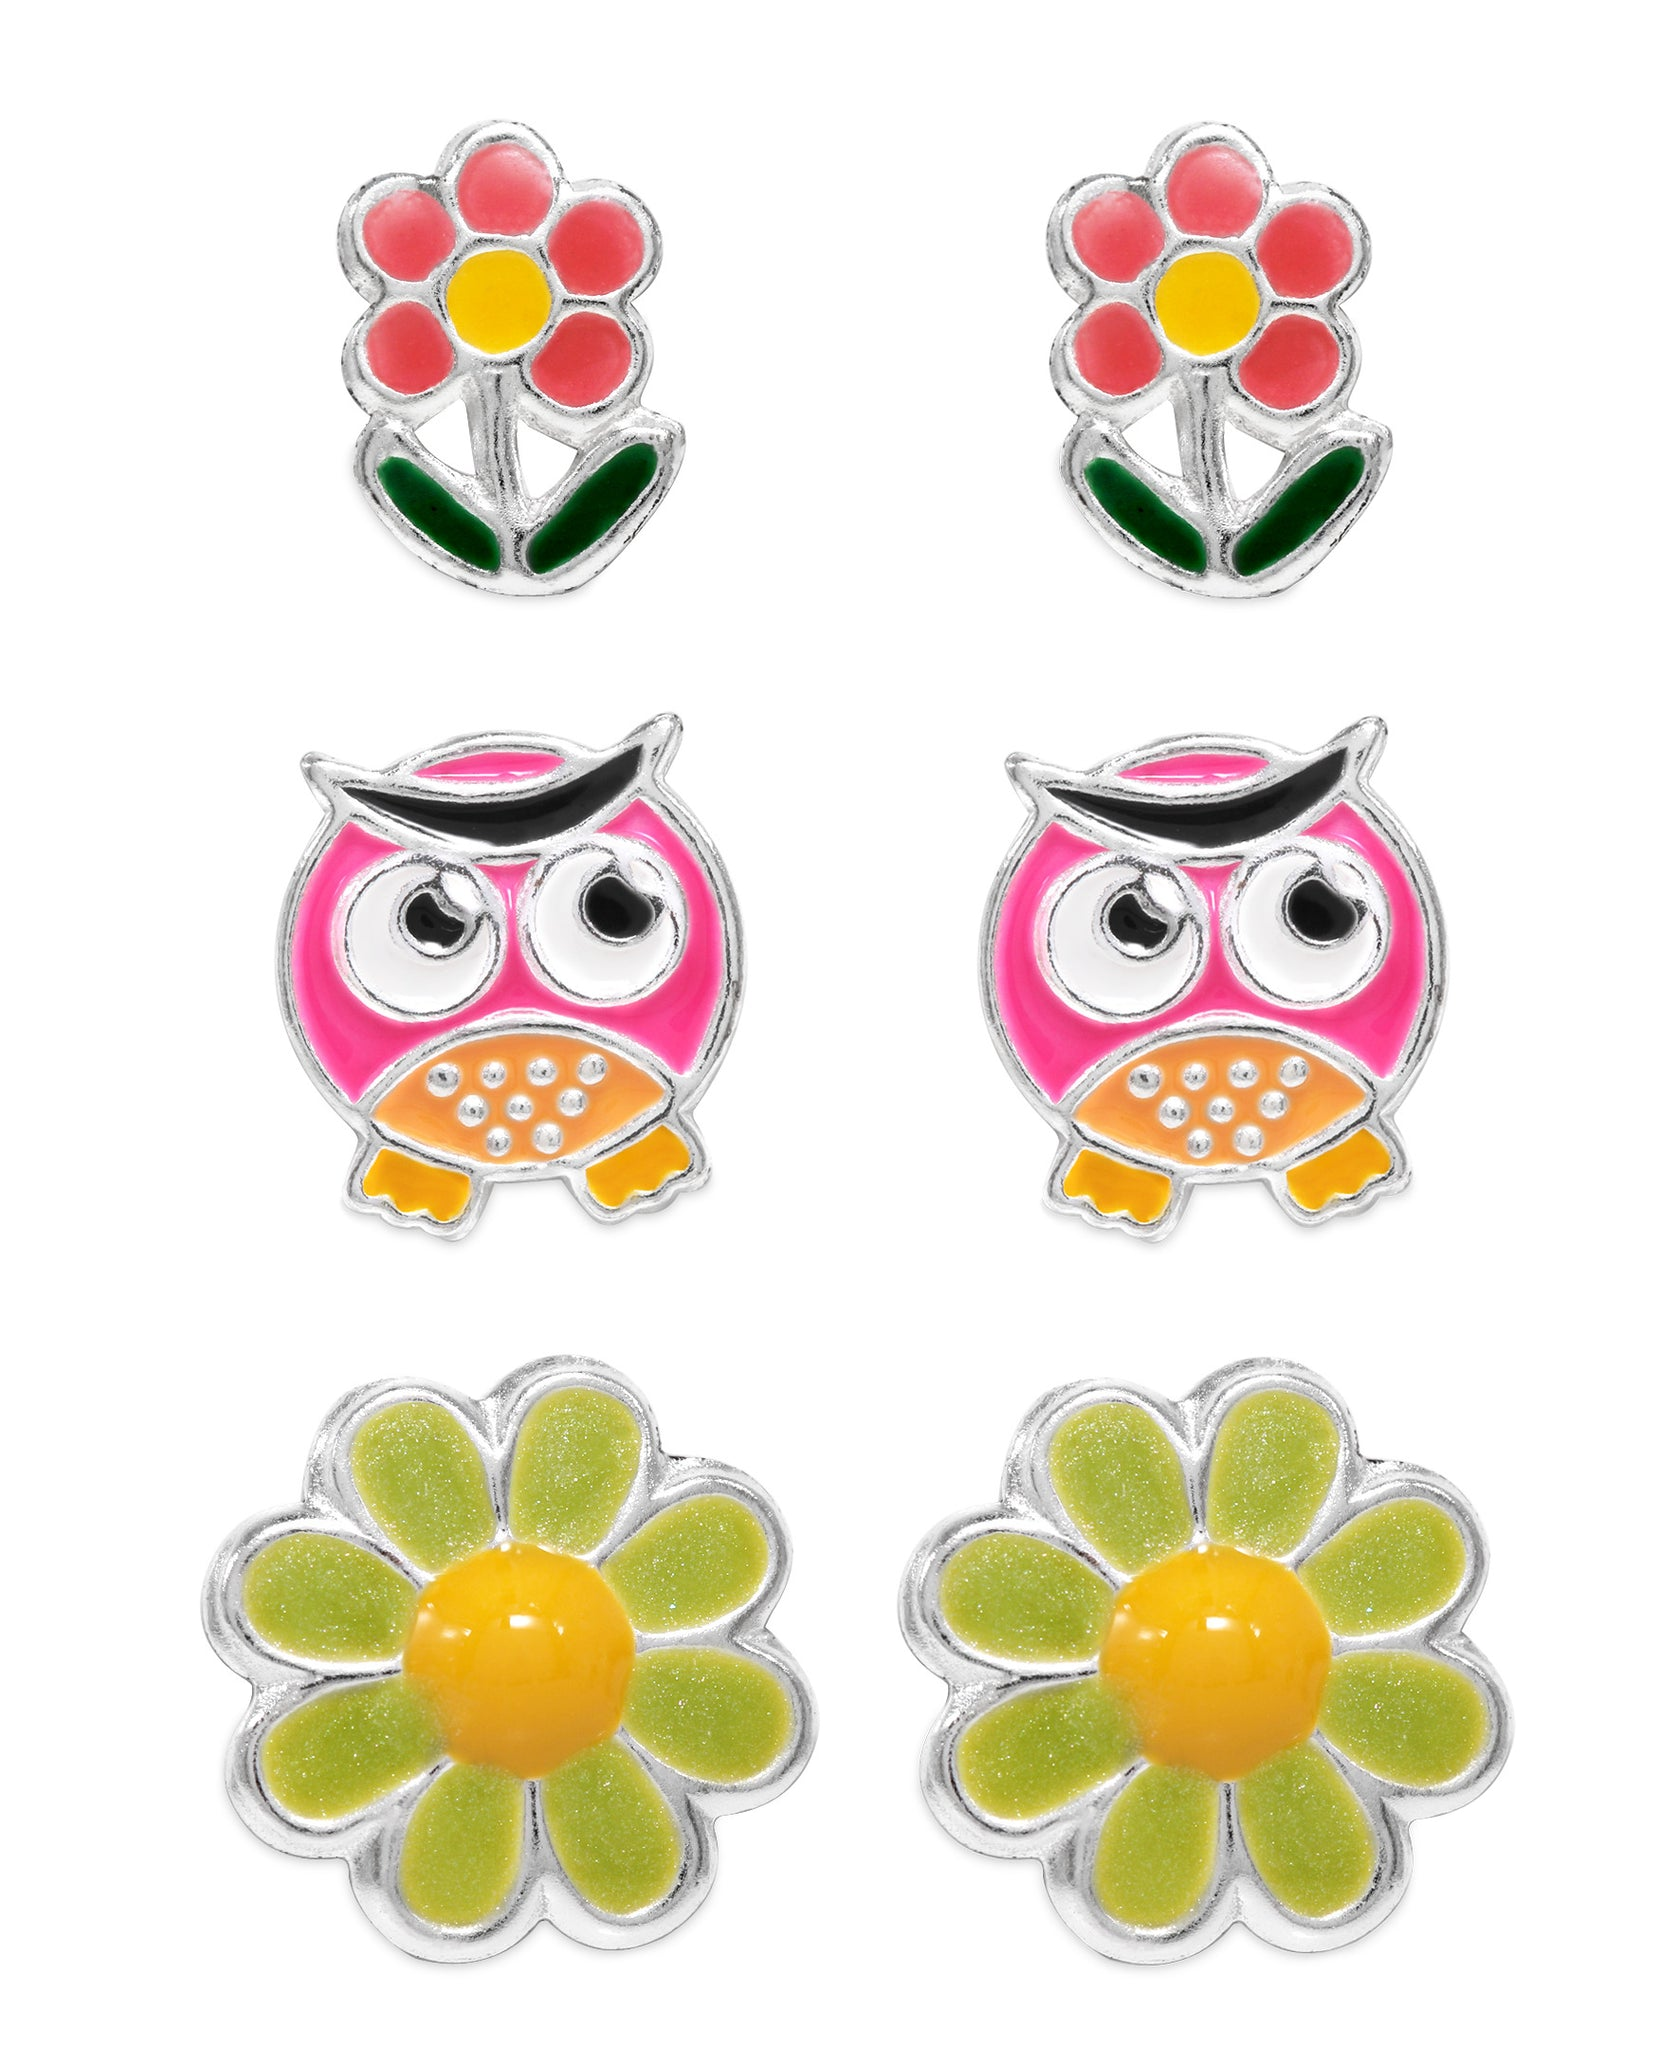 Children's Sterling Silver Owl, Blossom, Flower Stud Earrings - Set of 3 - Rhona Sutton Jewellery